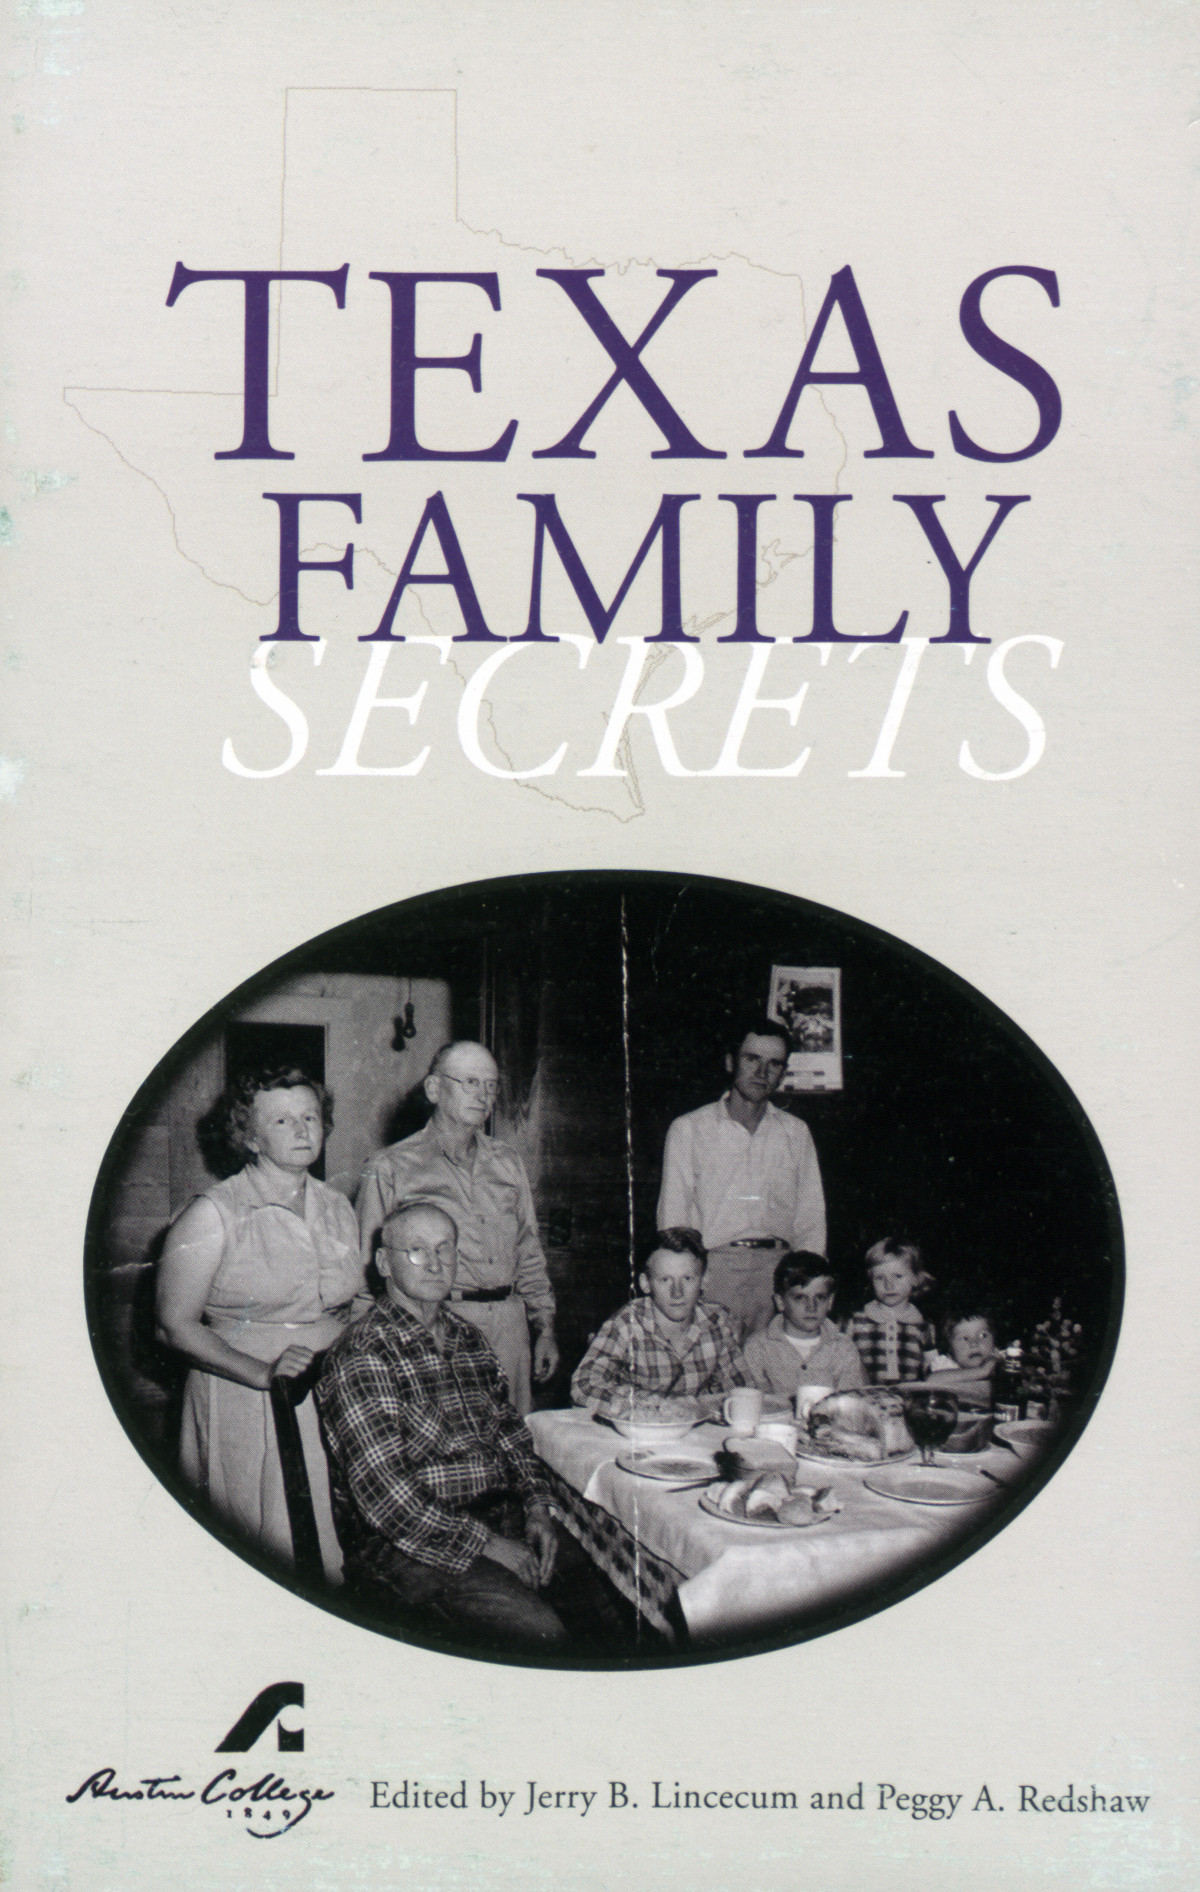 Texas Family Secrets                                                                                                      [Sequence #]: 1 of 212